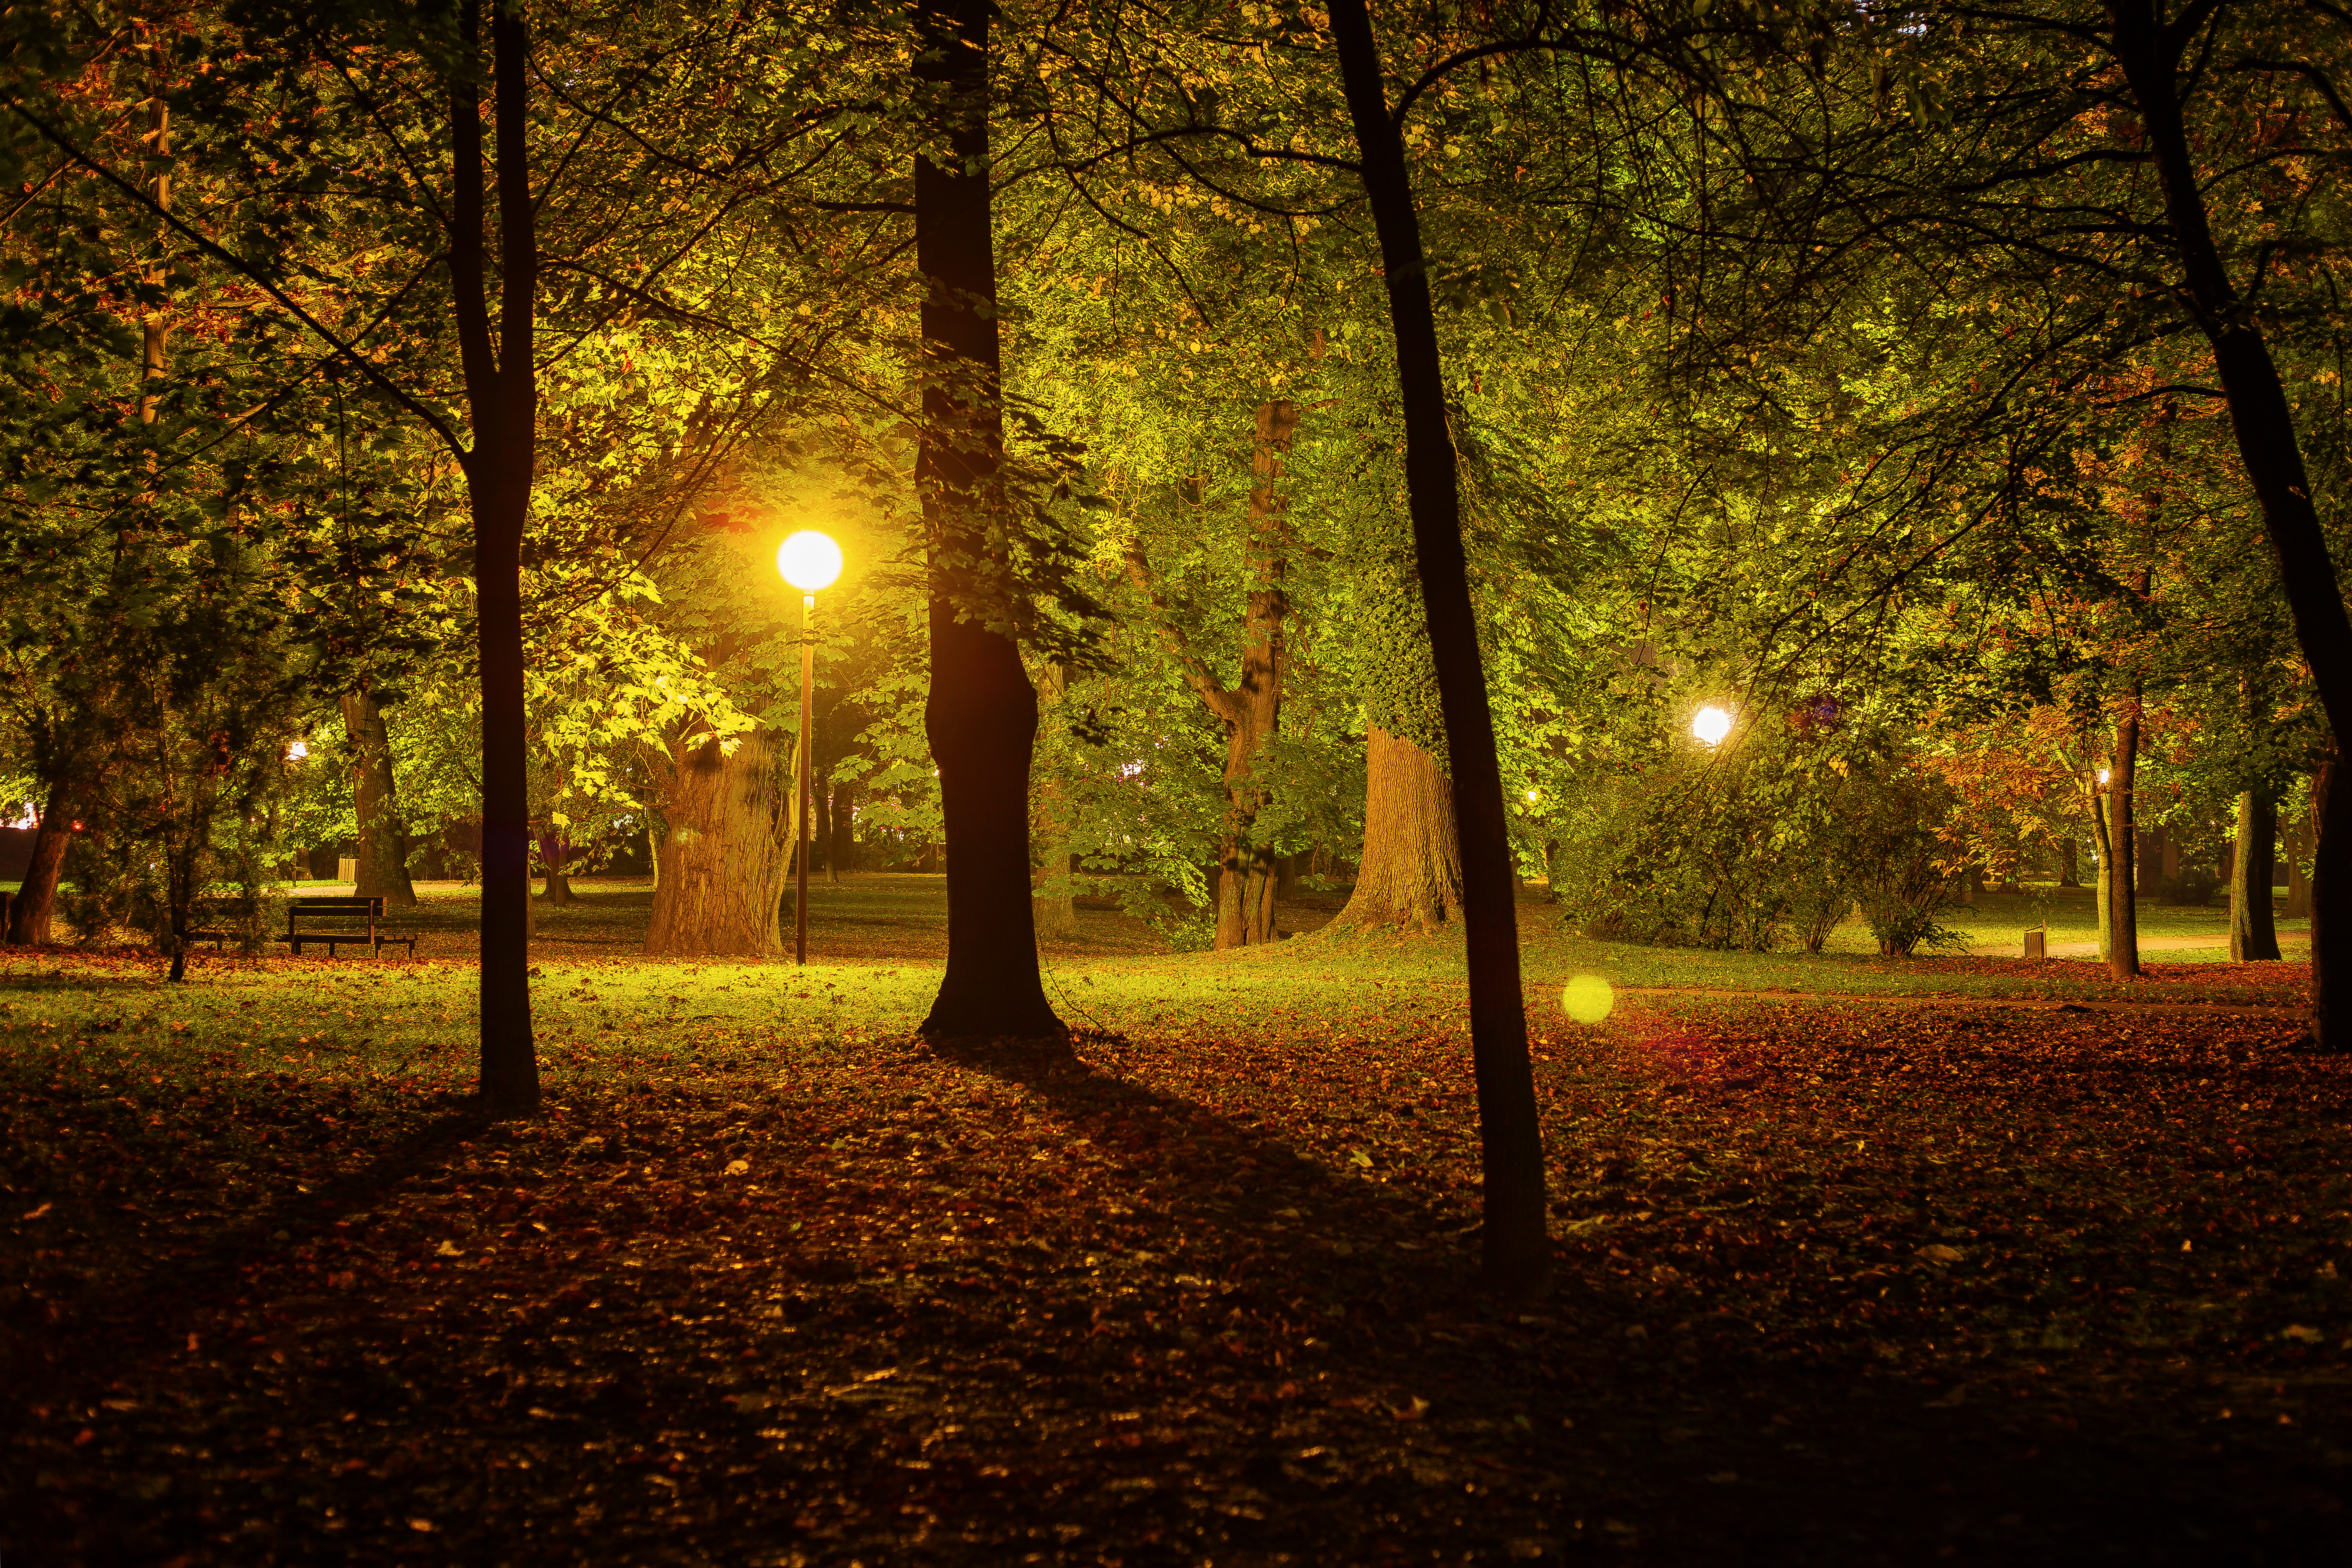 Night in the park photo